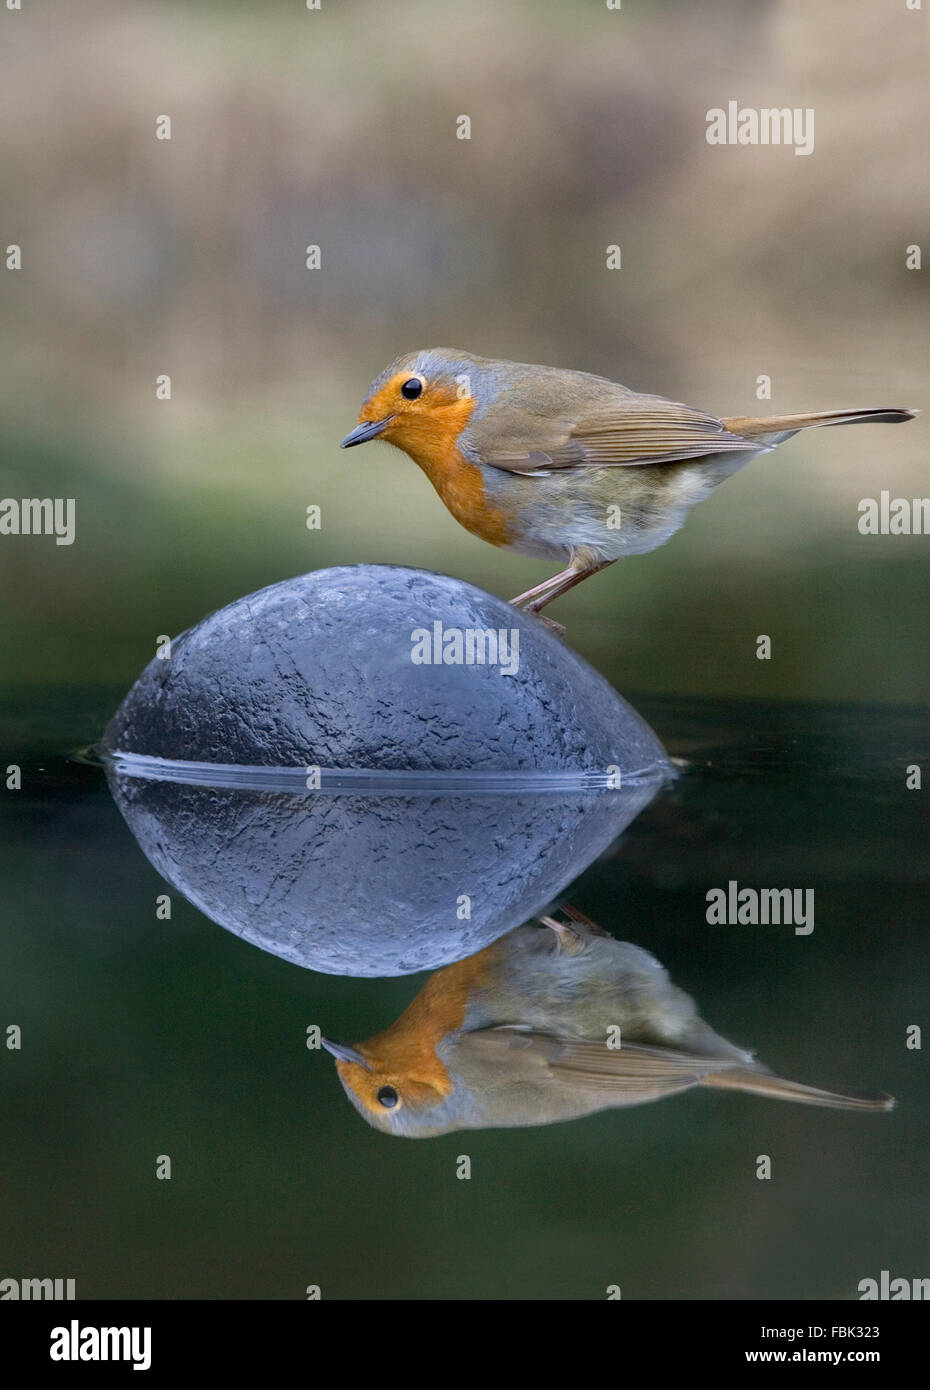 European Robin (Erithacus rubecula) perched on a stone in the middle of a garden pond, with refection, Bentley. - Stock Image